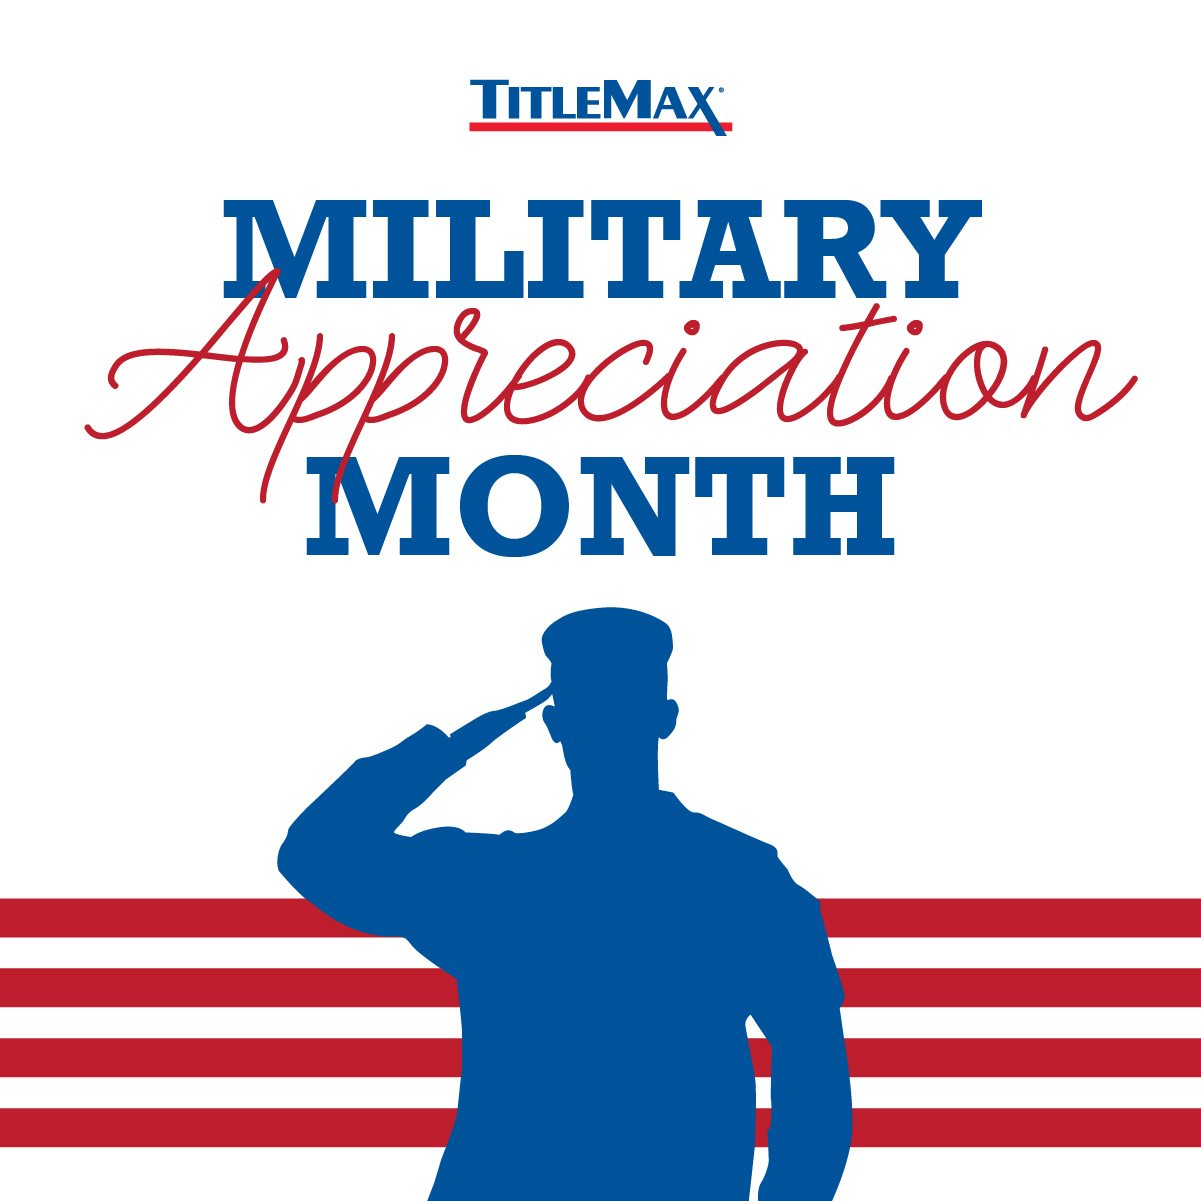 In Honor of Military Appreciation Month